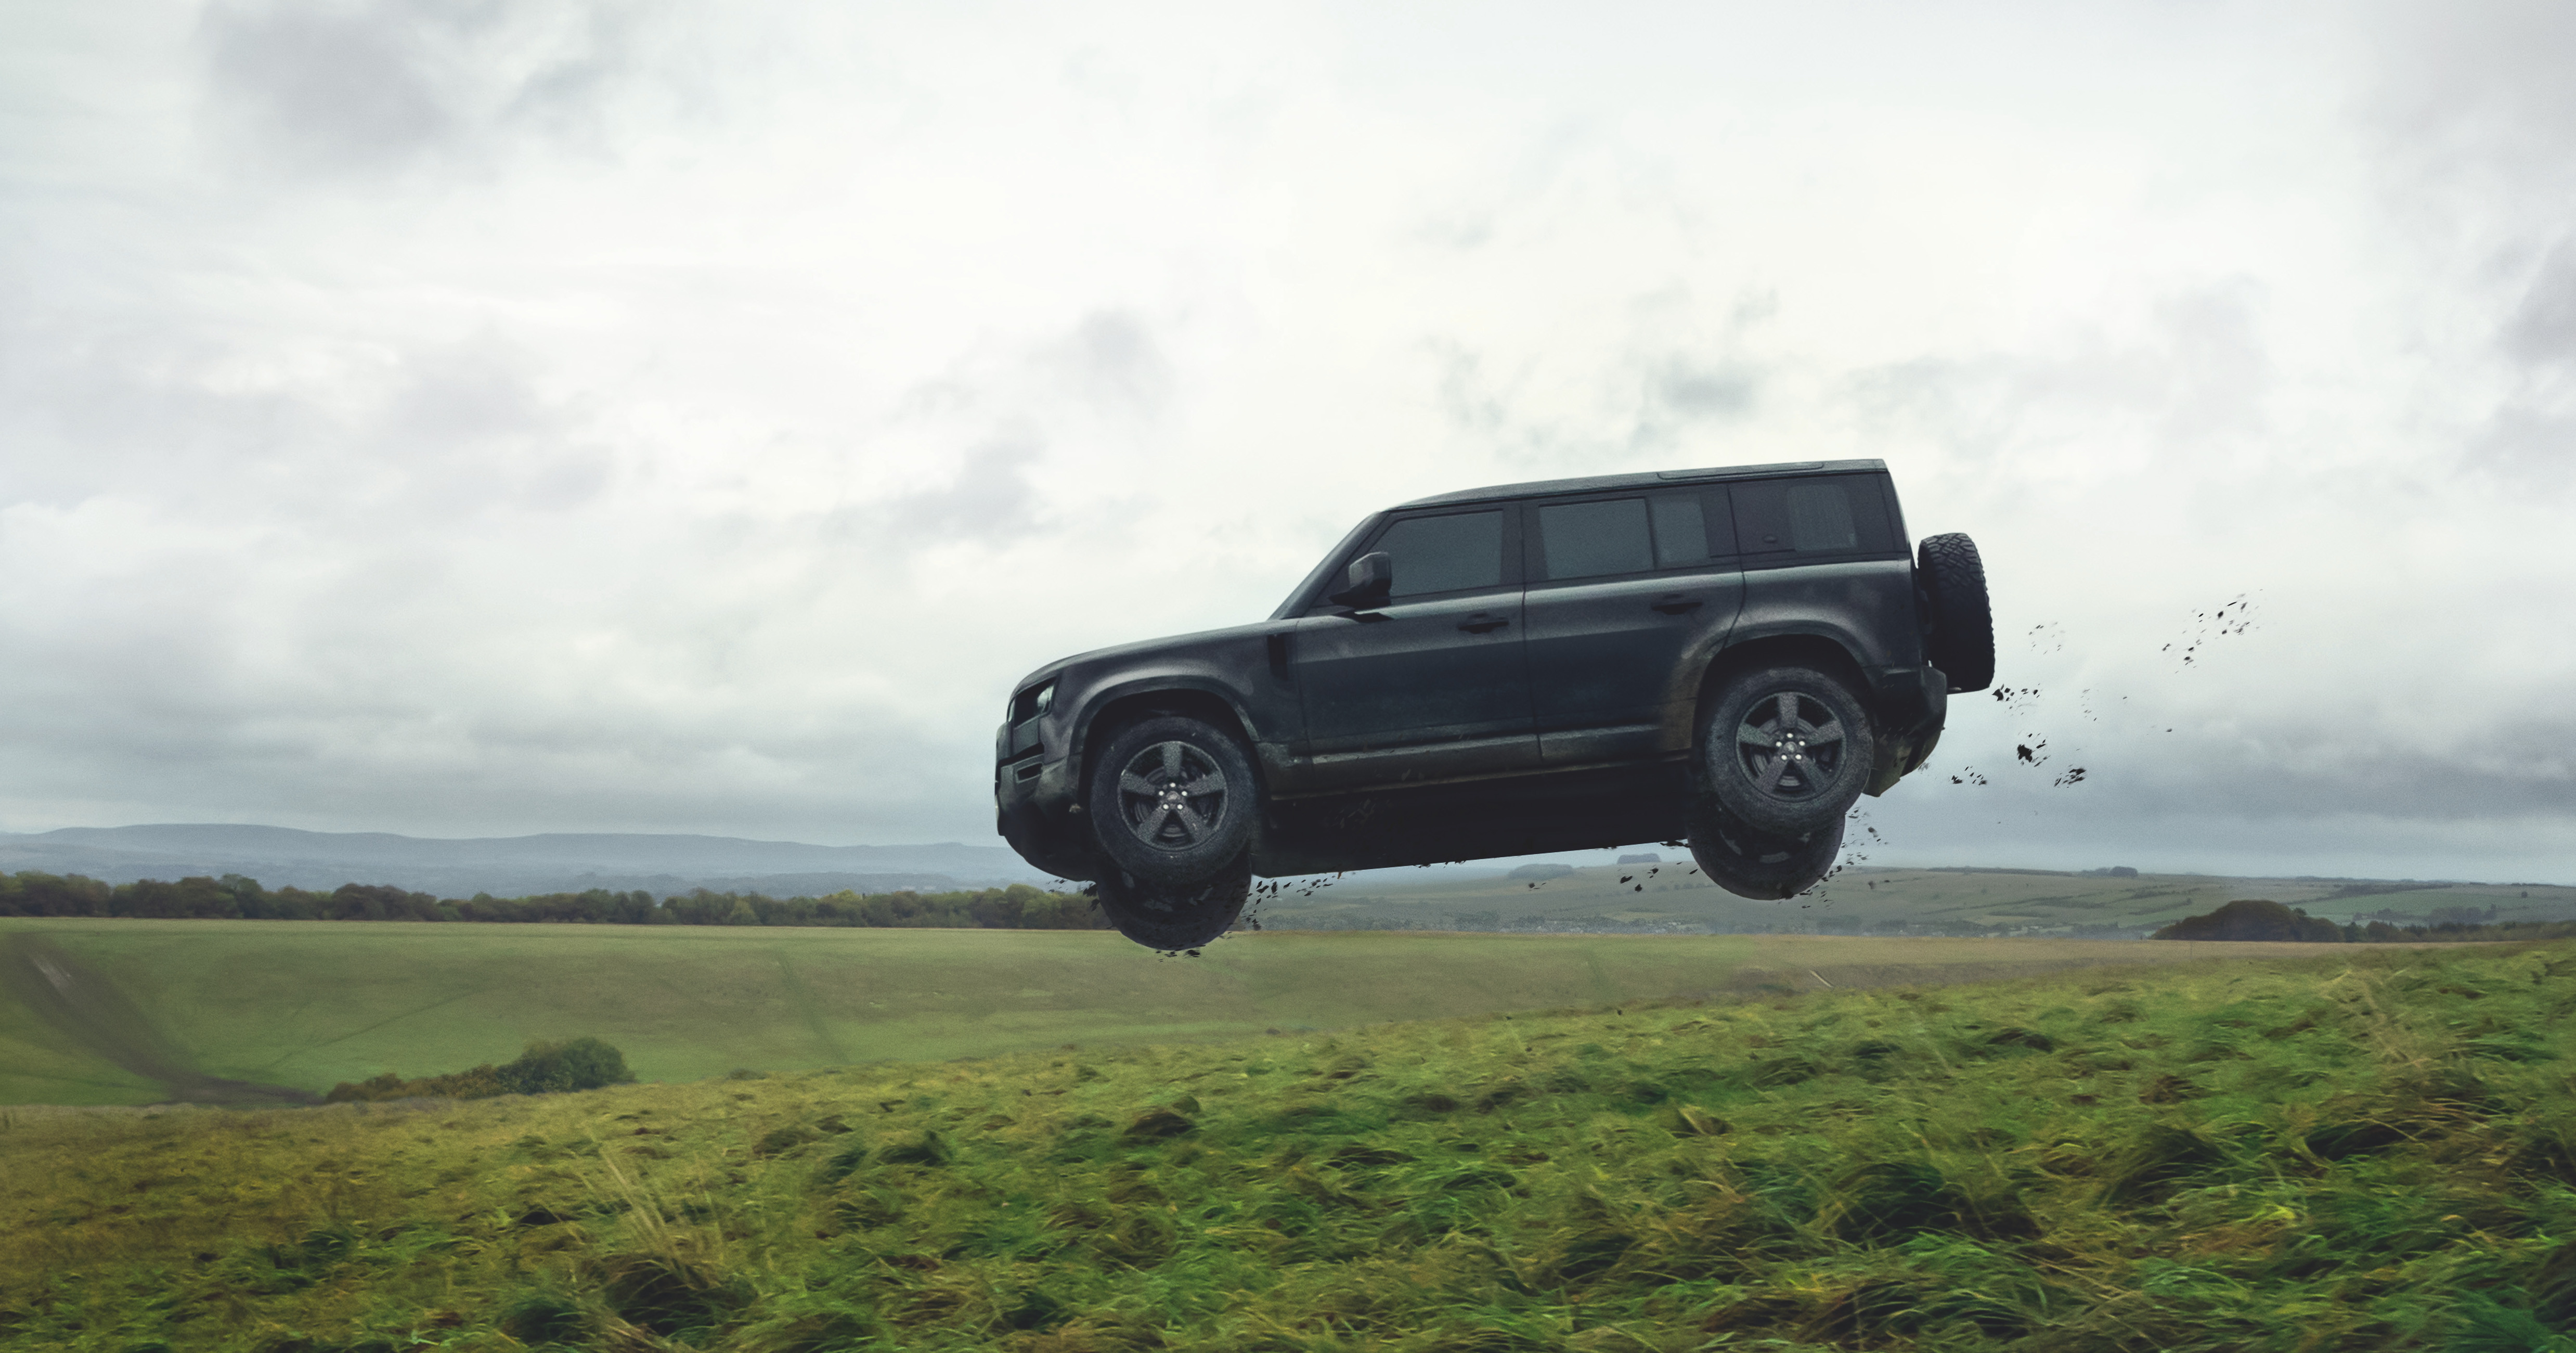 Professional stunt drivers push the Defender to the limit in the upcoming James Bond film